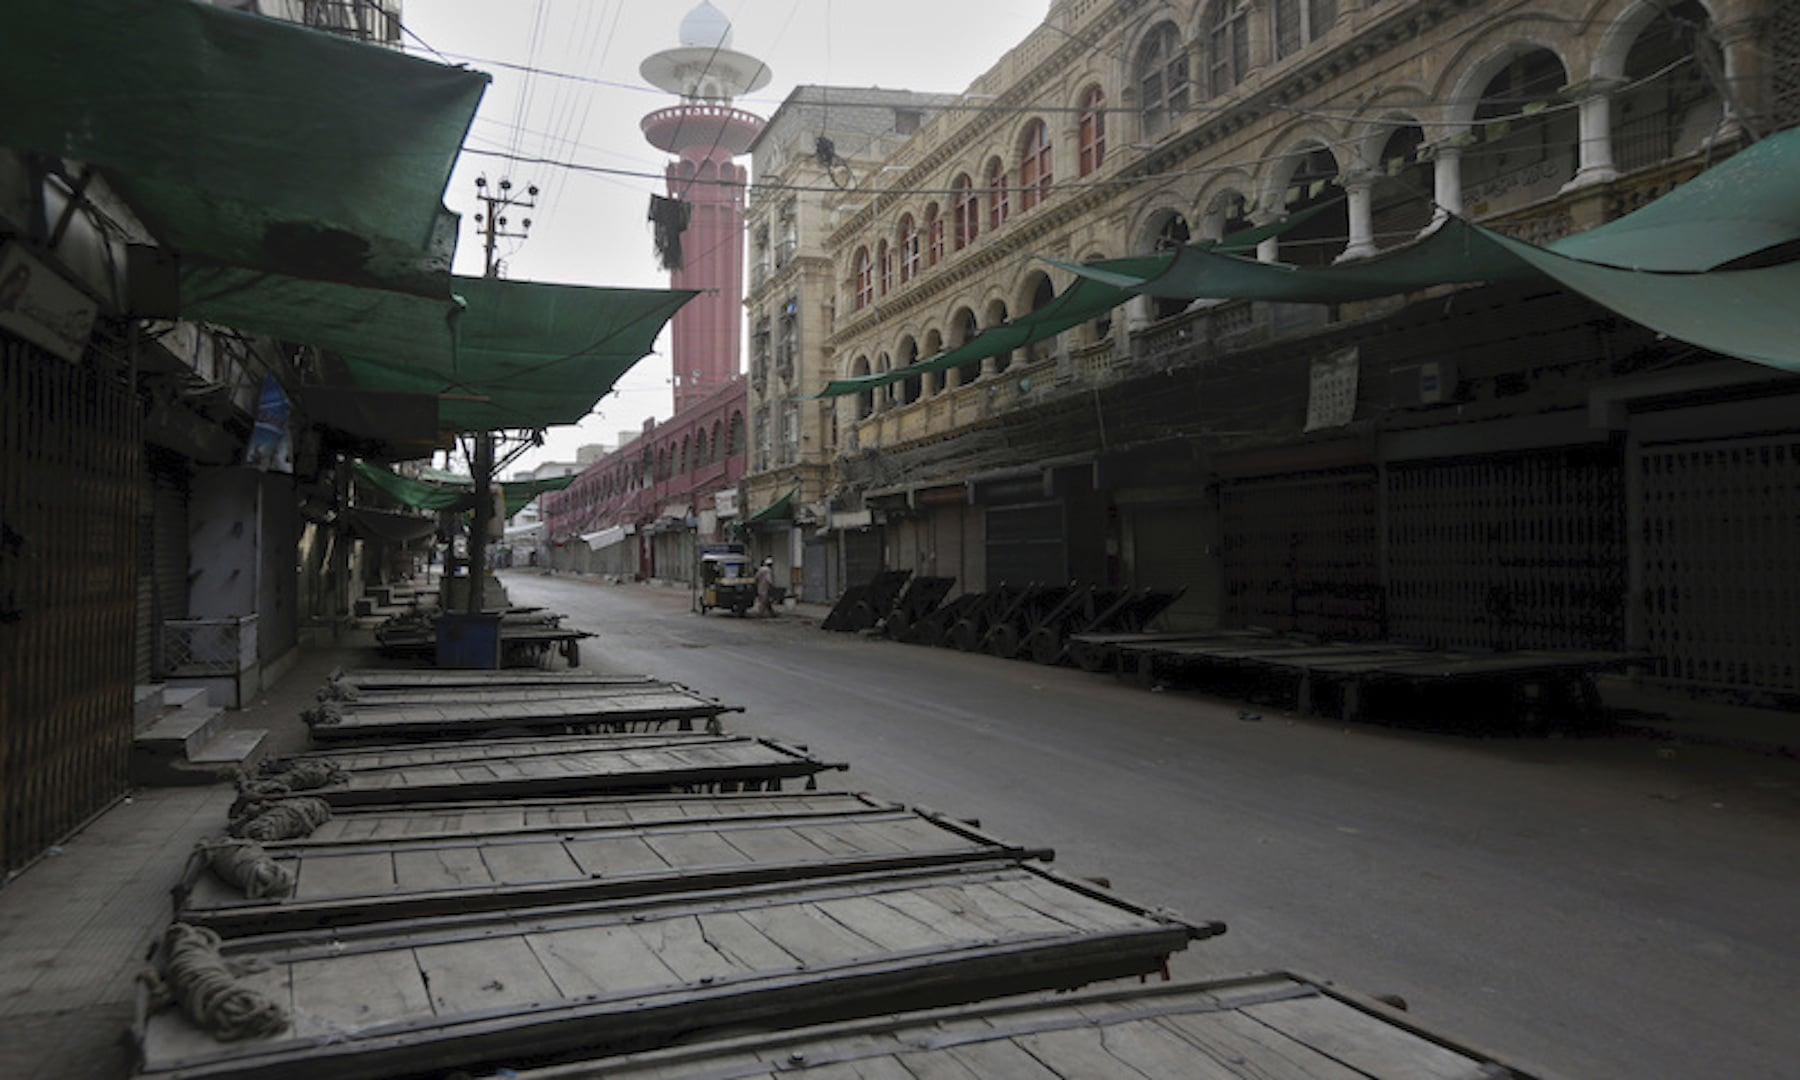 A view of a downtown market seen empty during restrictions in Karachi during strict lockdown last month. — AP